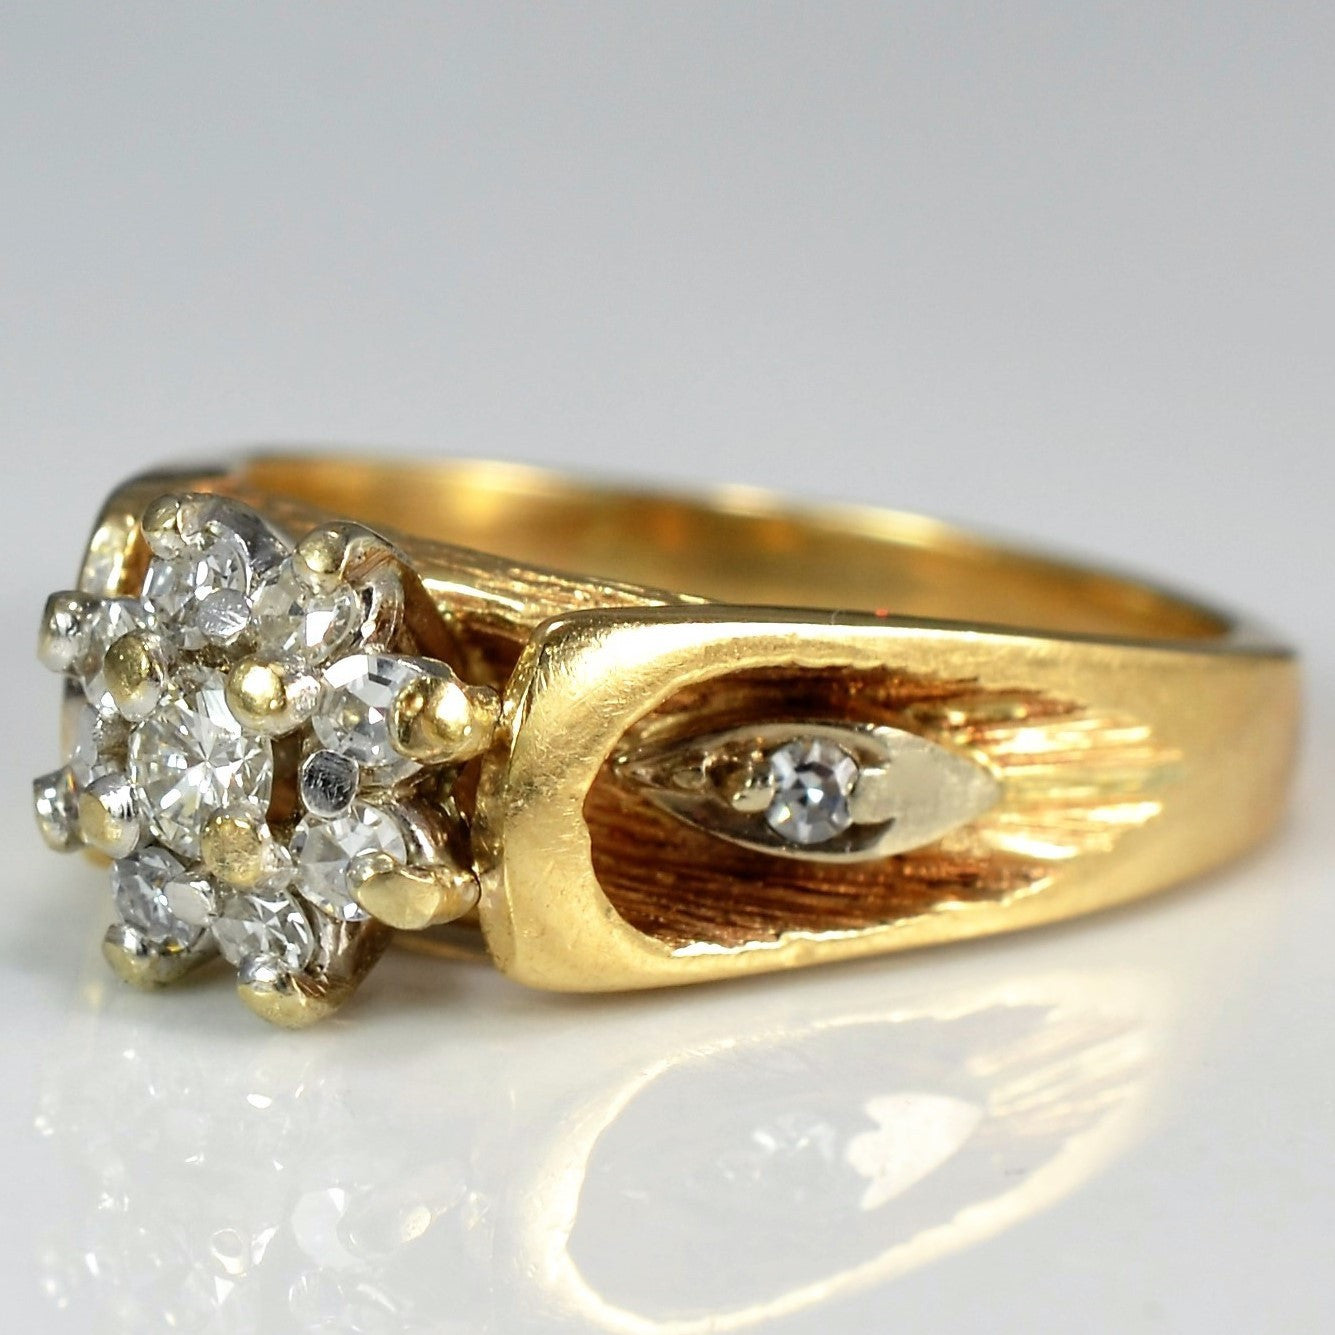 Floral Diamond Cocktail Ring | 0.25 ctw, SZ 5.25 |